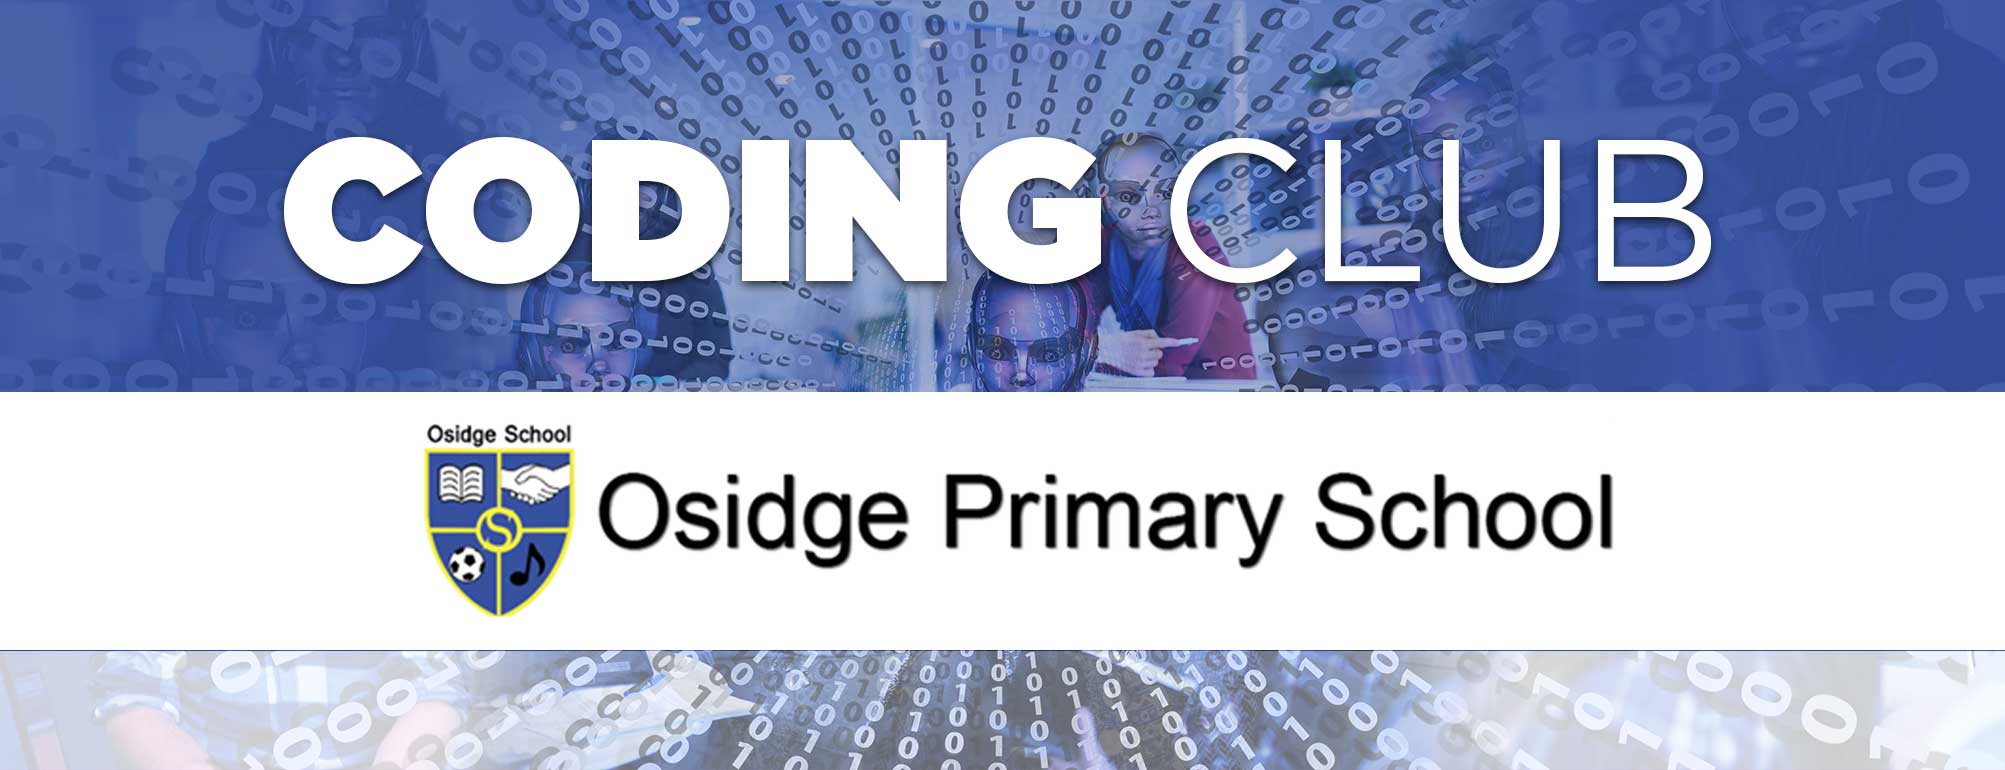 Coding Club - Osidge Primary School - April to July 2018